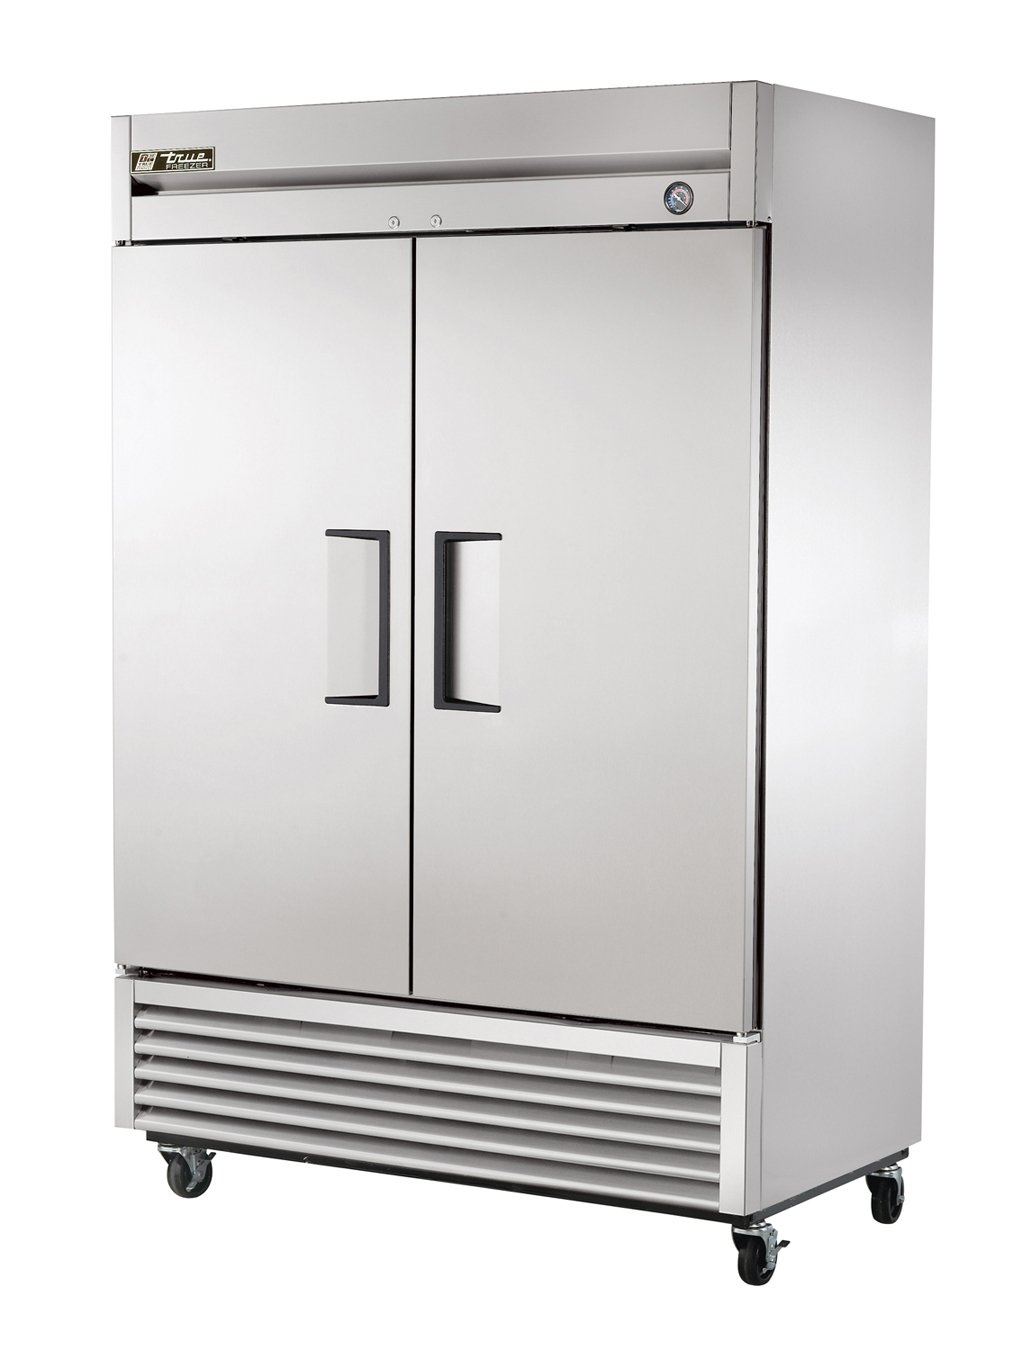 61IEDGmCFCL._SL1350_ amazon com true t 49f freezer, 54 125\